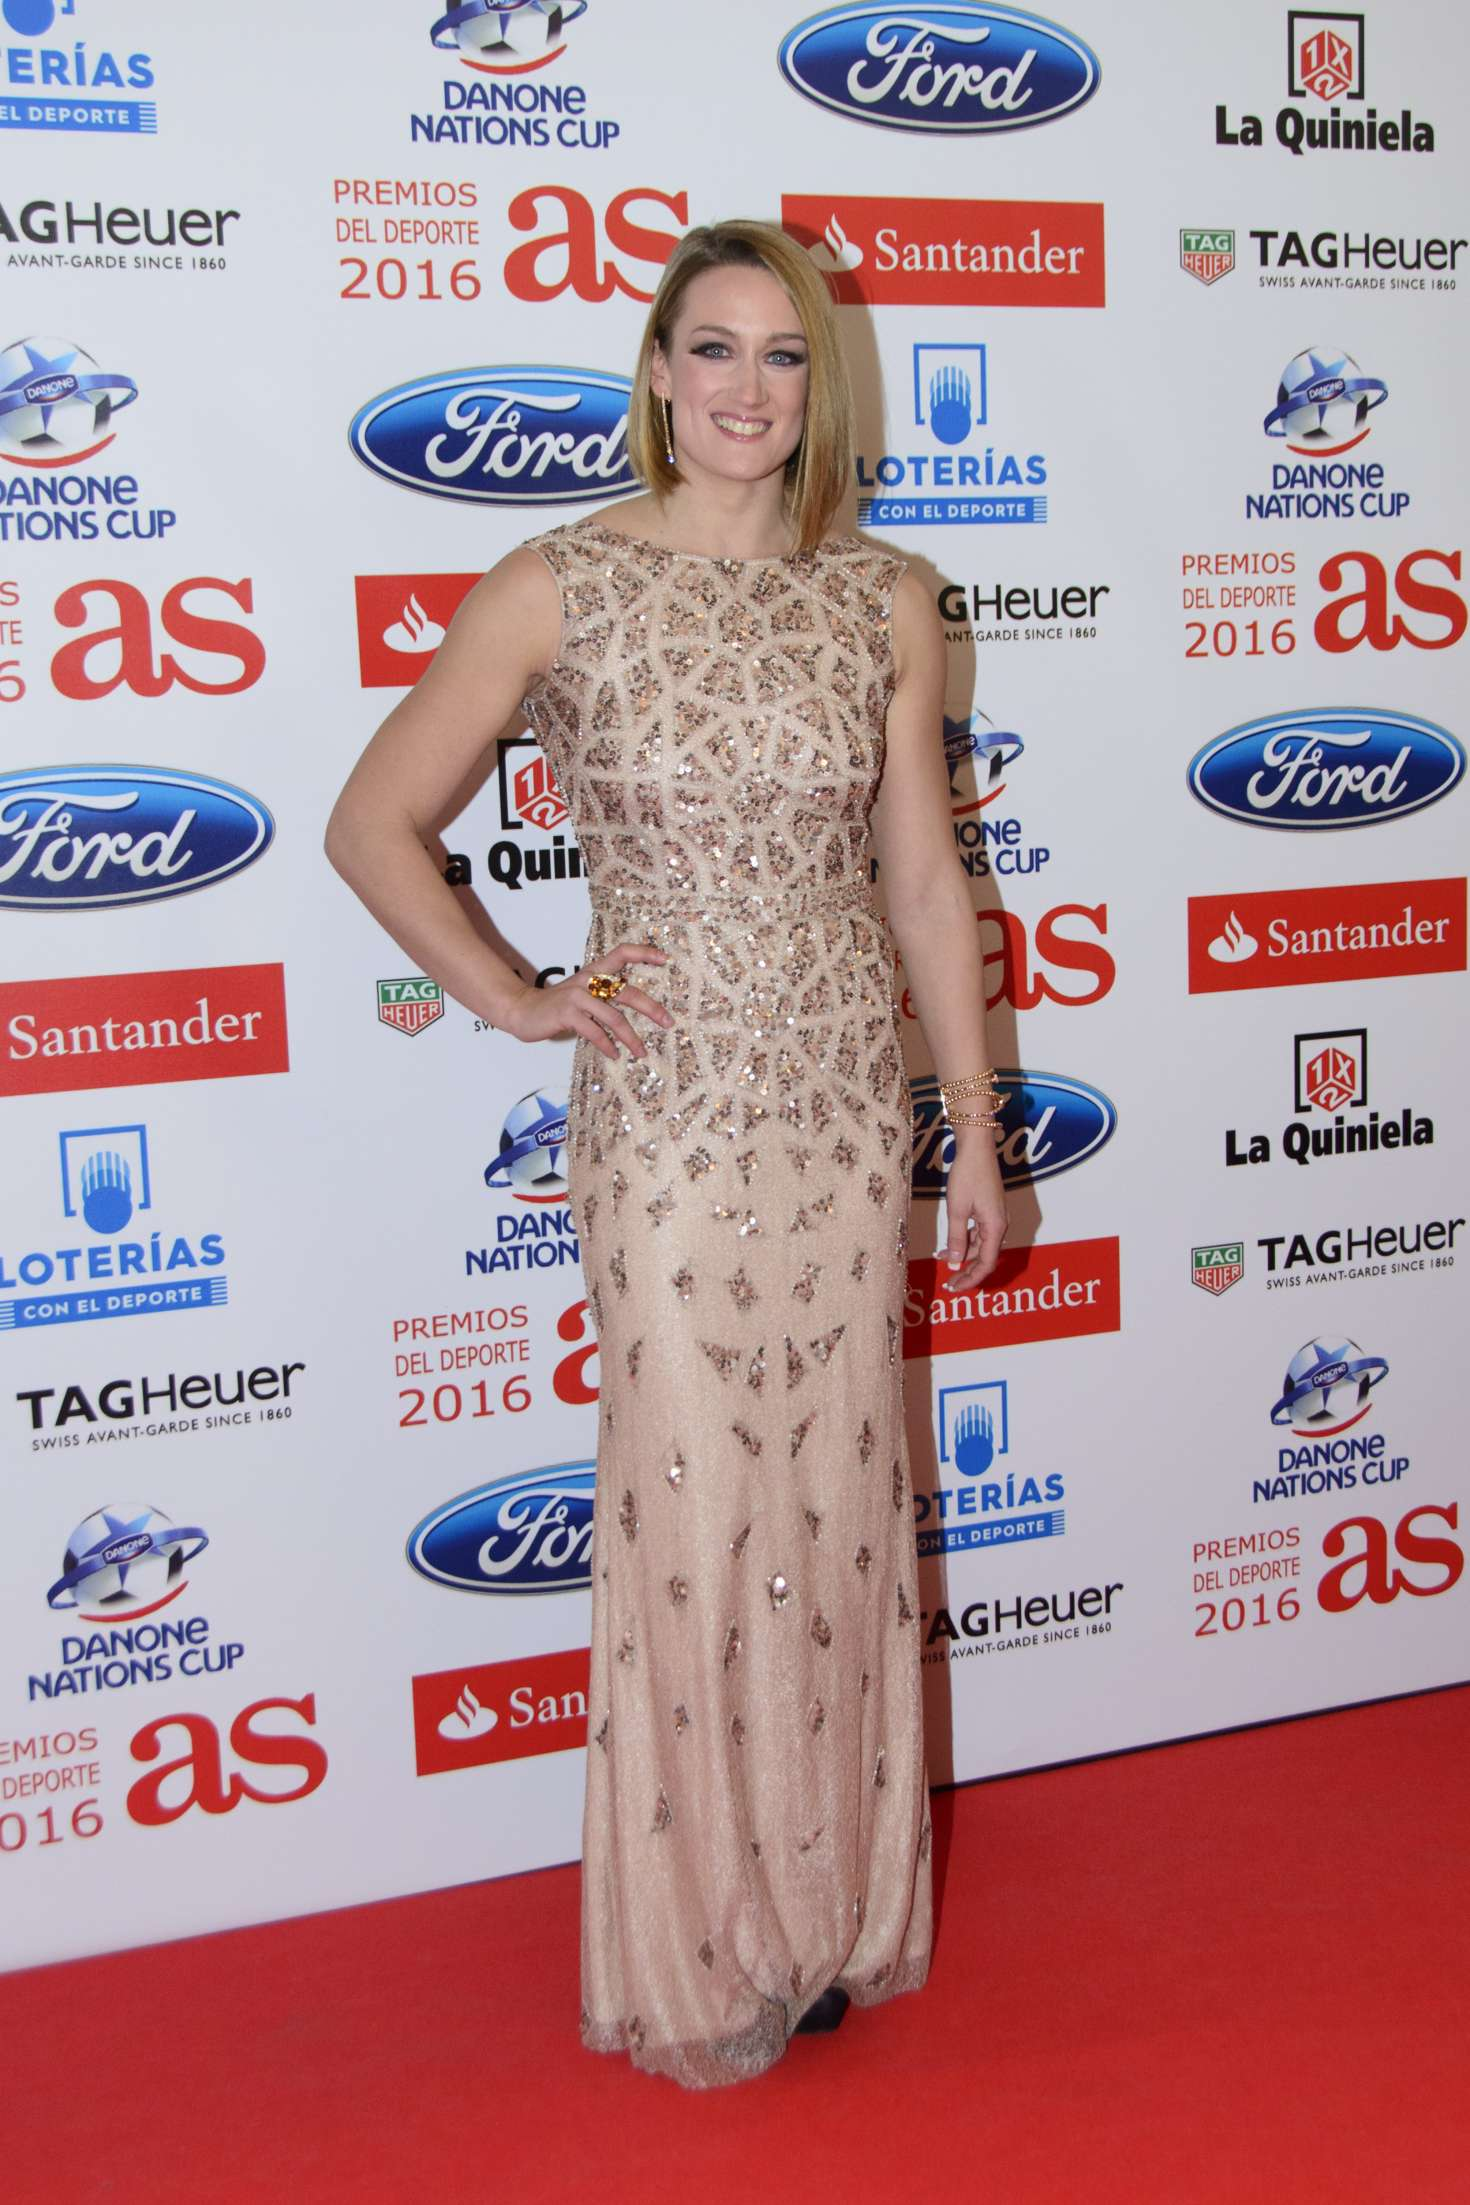 Mireia belmonte as sports person of the year awards 2016 04 full size